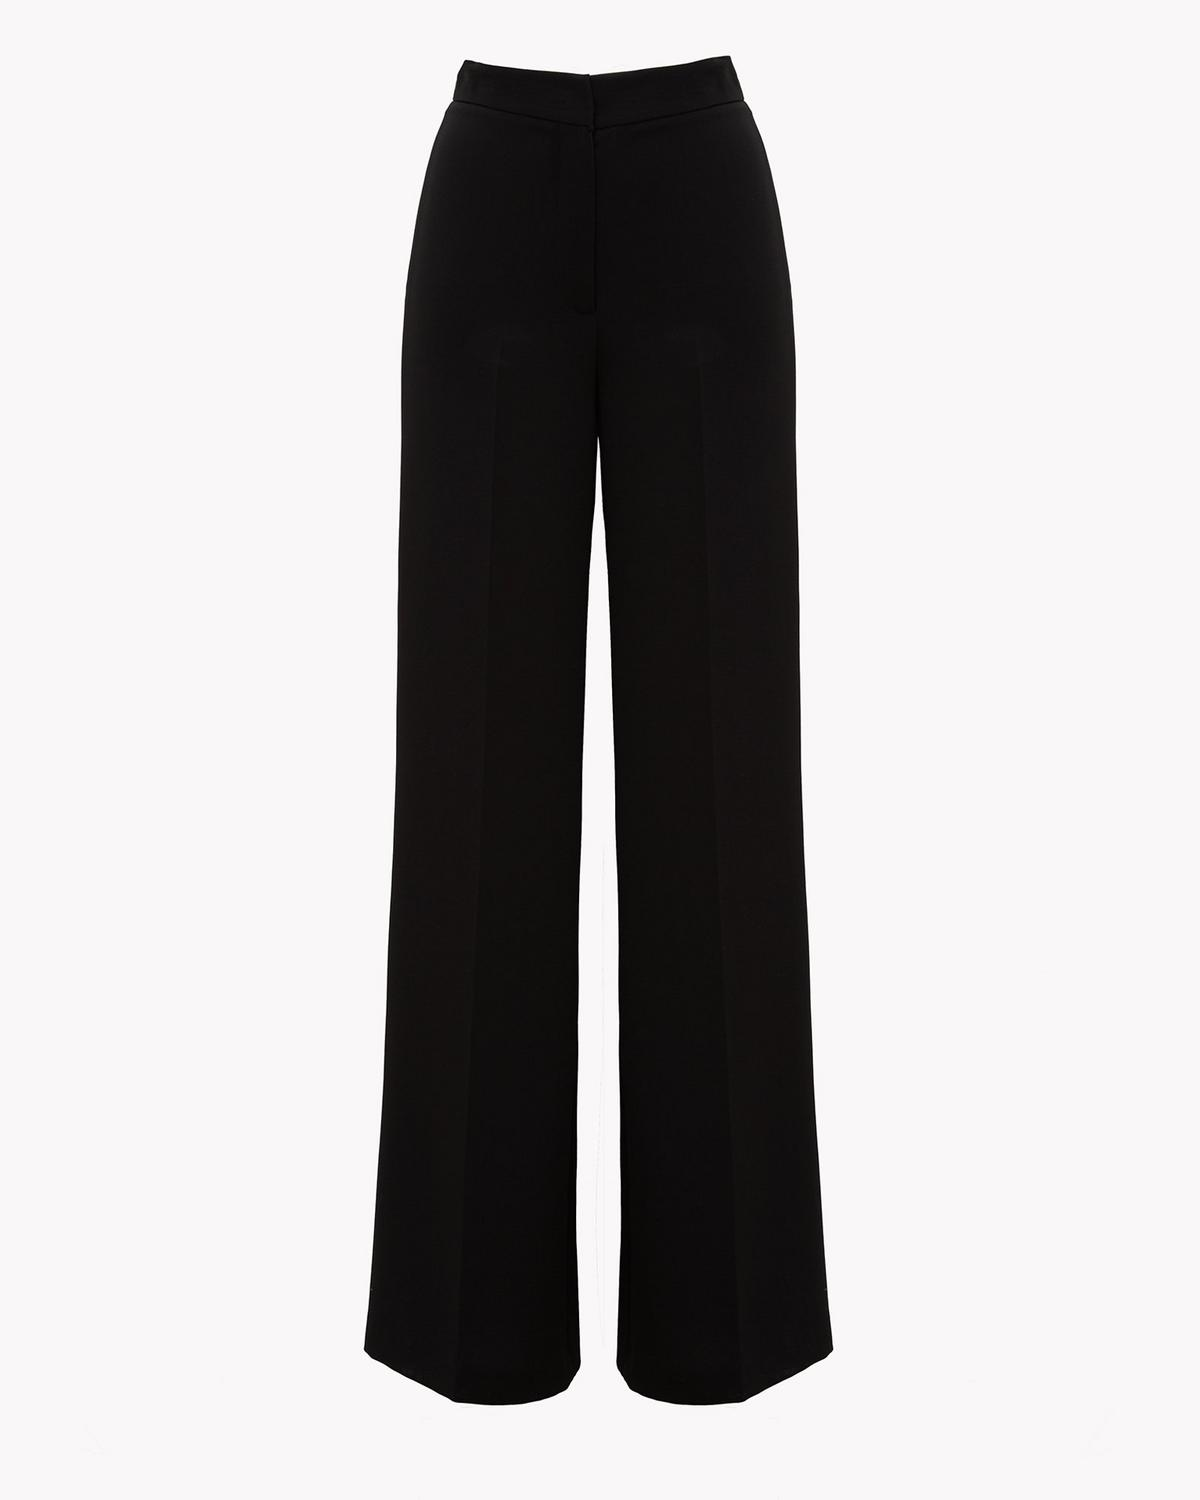 38de6dbe8bc High-Waist Wide-Leg Pant 1 - click to view larger image ...